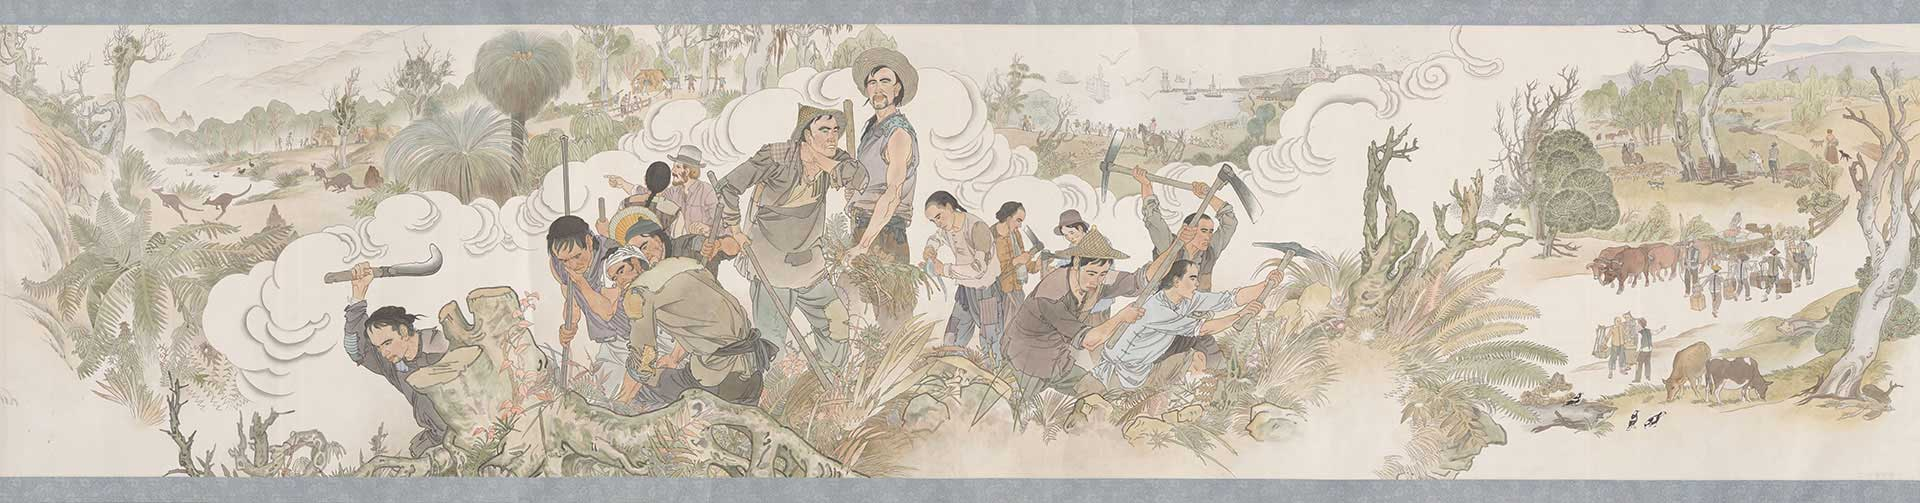 Stitched panels of the Harvest of Endurance scroll featuring 'Before the gold rush' and 'Chinese workers'.